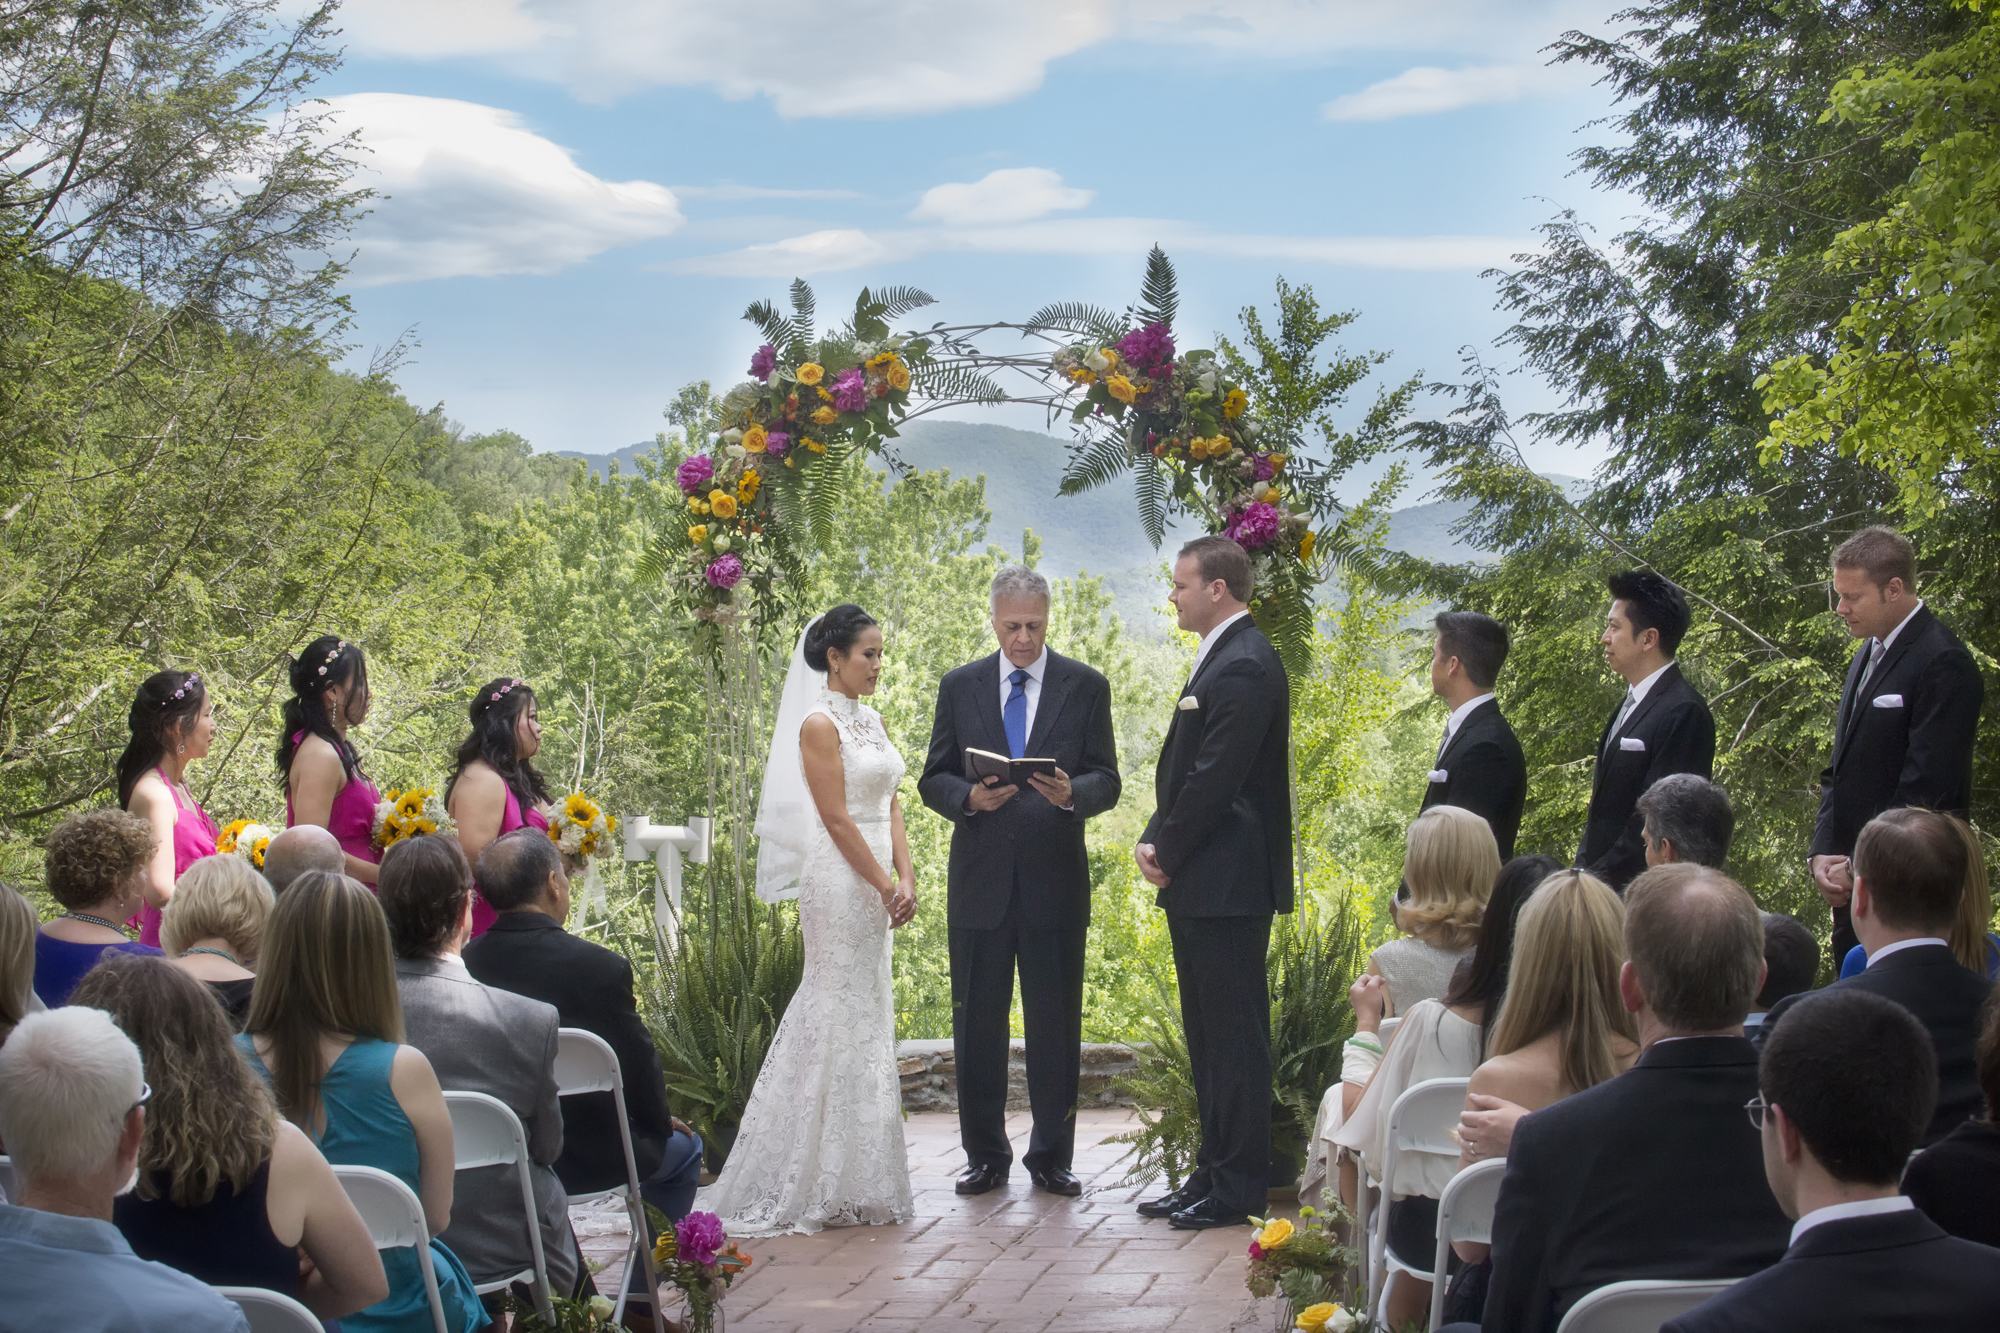 Bull creek ranch outdoor wedding and event venue for Wedding venues in asheville nc